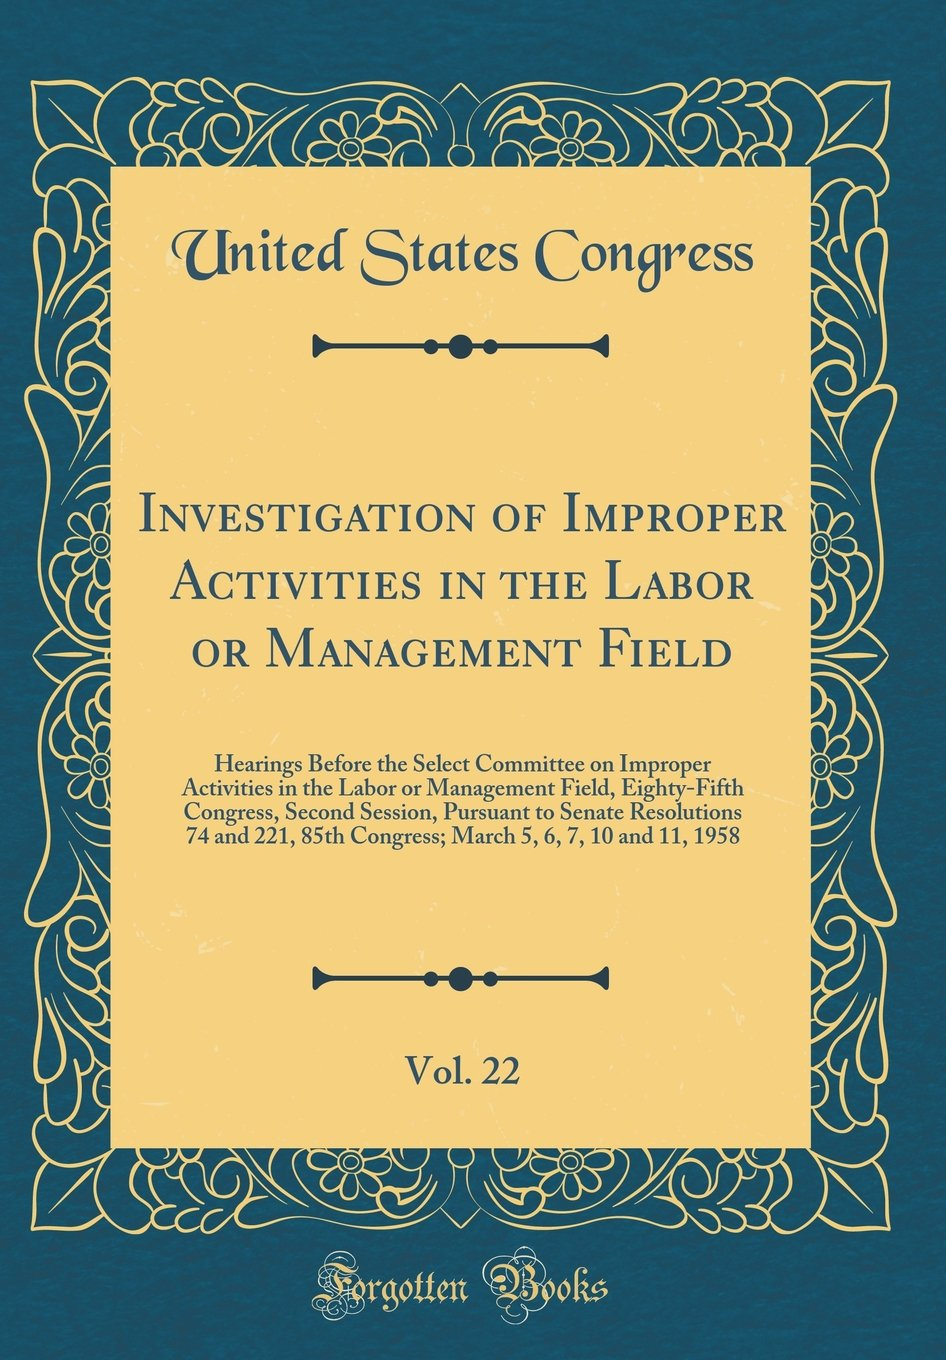 Download Investigation of Improper Activities in the Labor or Management Field, Vol. 22: Hearings Before the Select Committee on Improper Activities in the ... Pursuant to Senate Resolutions 74 and 221, pdf epub